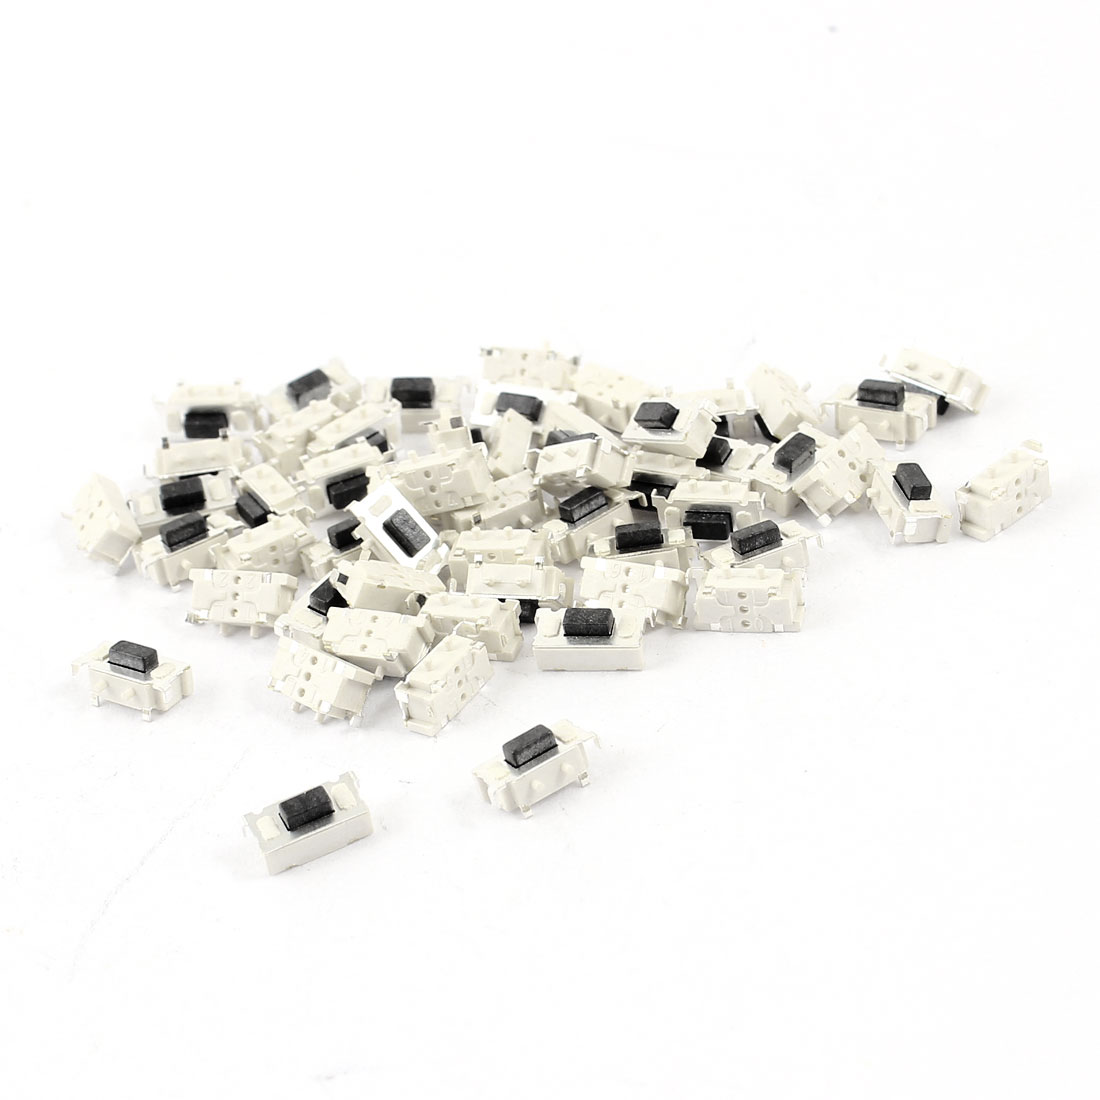 50 Pcs Momentary SMD PCB Mount SPST Tactile Tact Switch 6mmx3mmx3.5mm